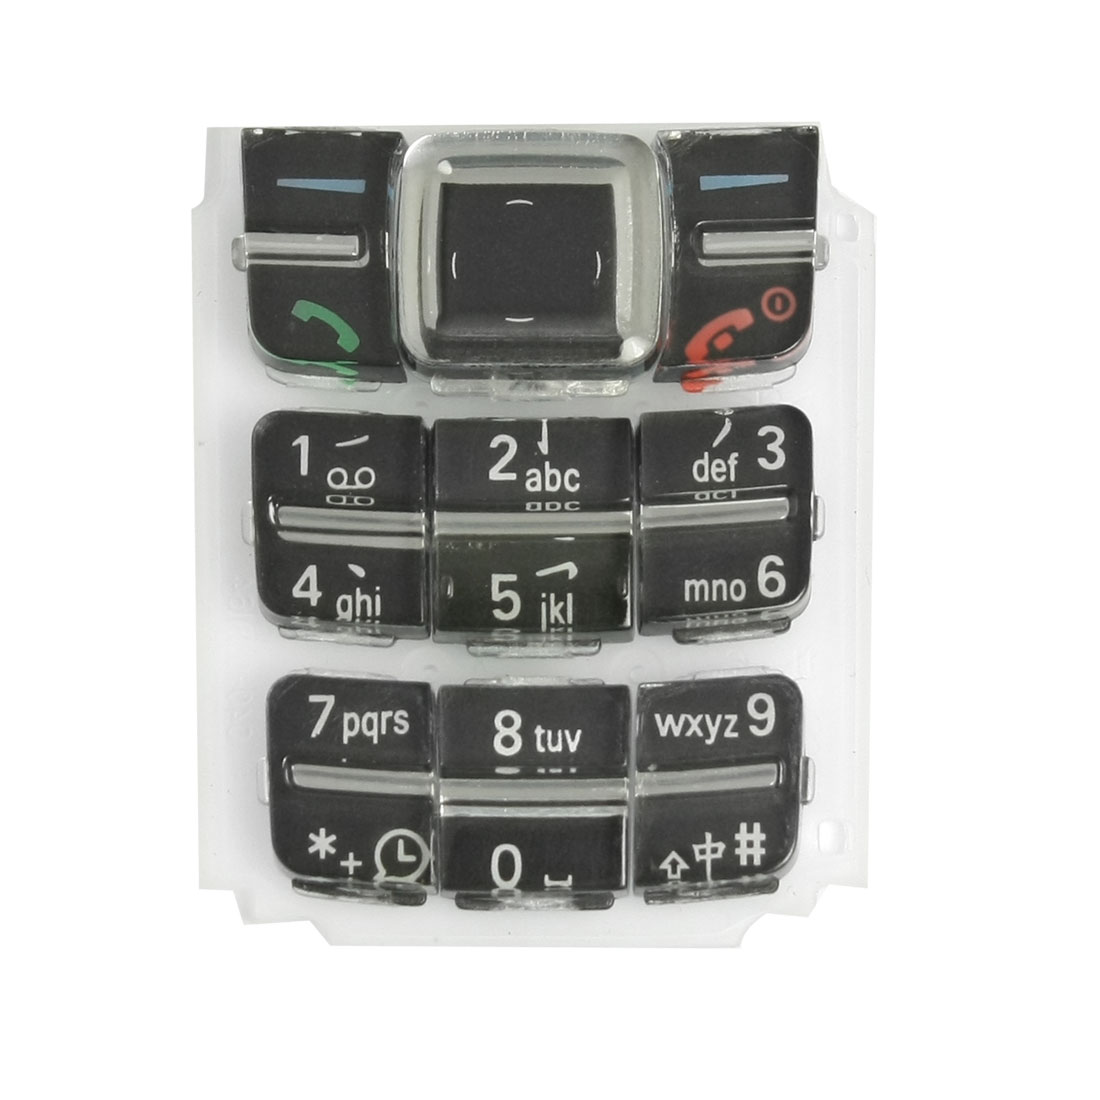 Black-Repairing-Spare-Parts-Plastic-Keyboard-for-Nokia-1600